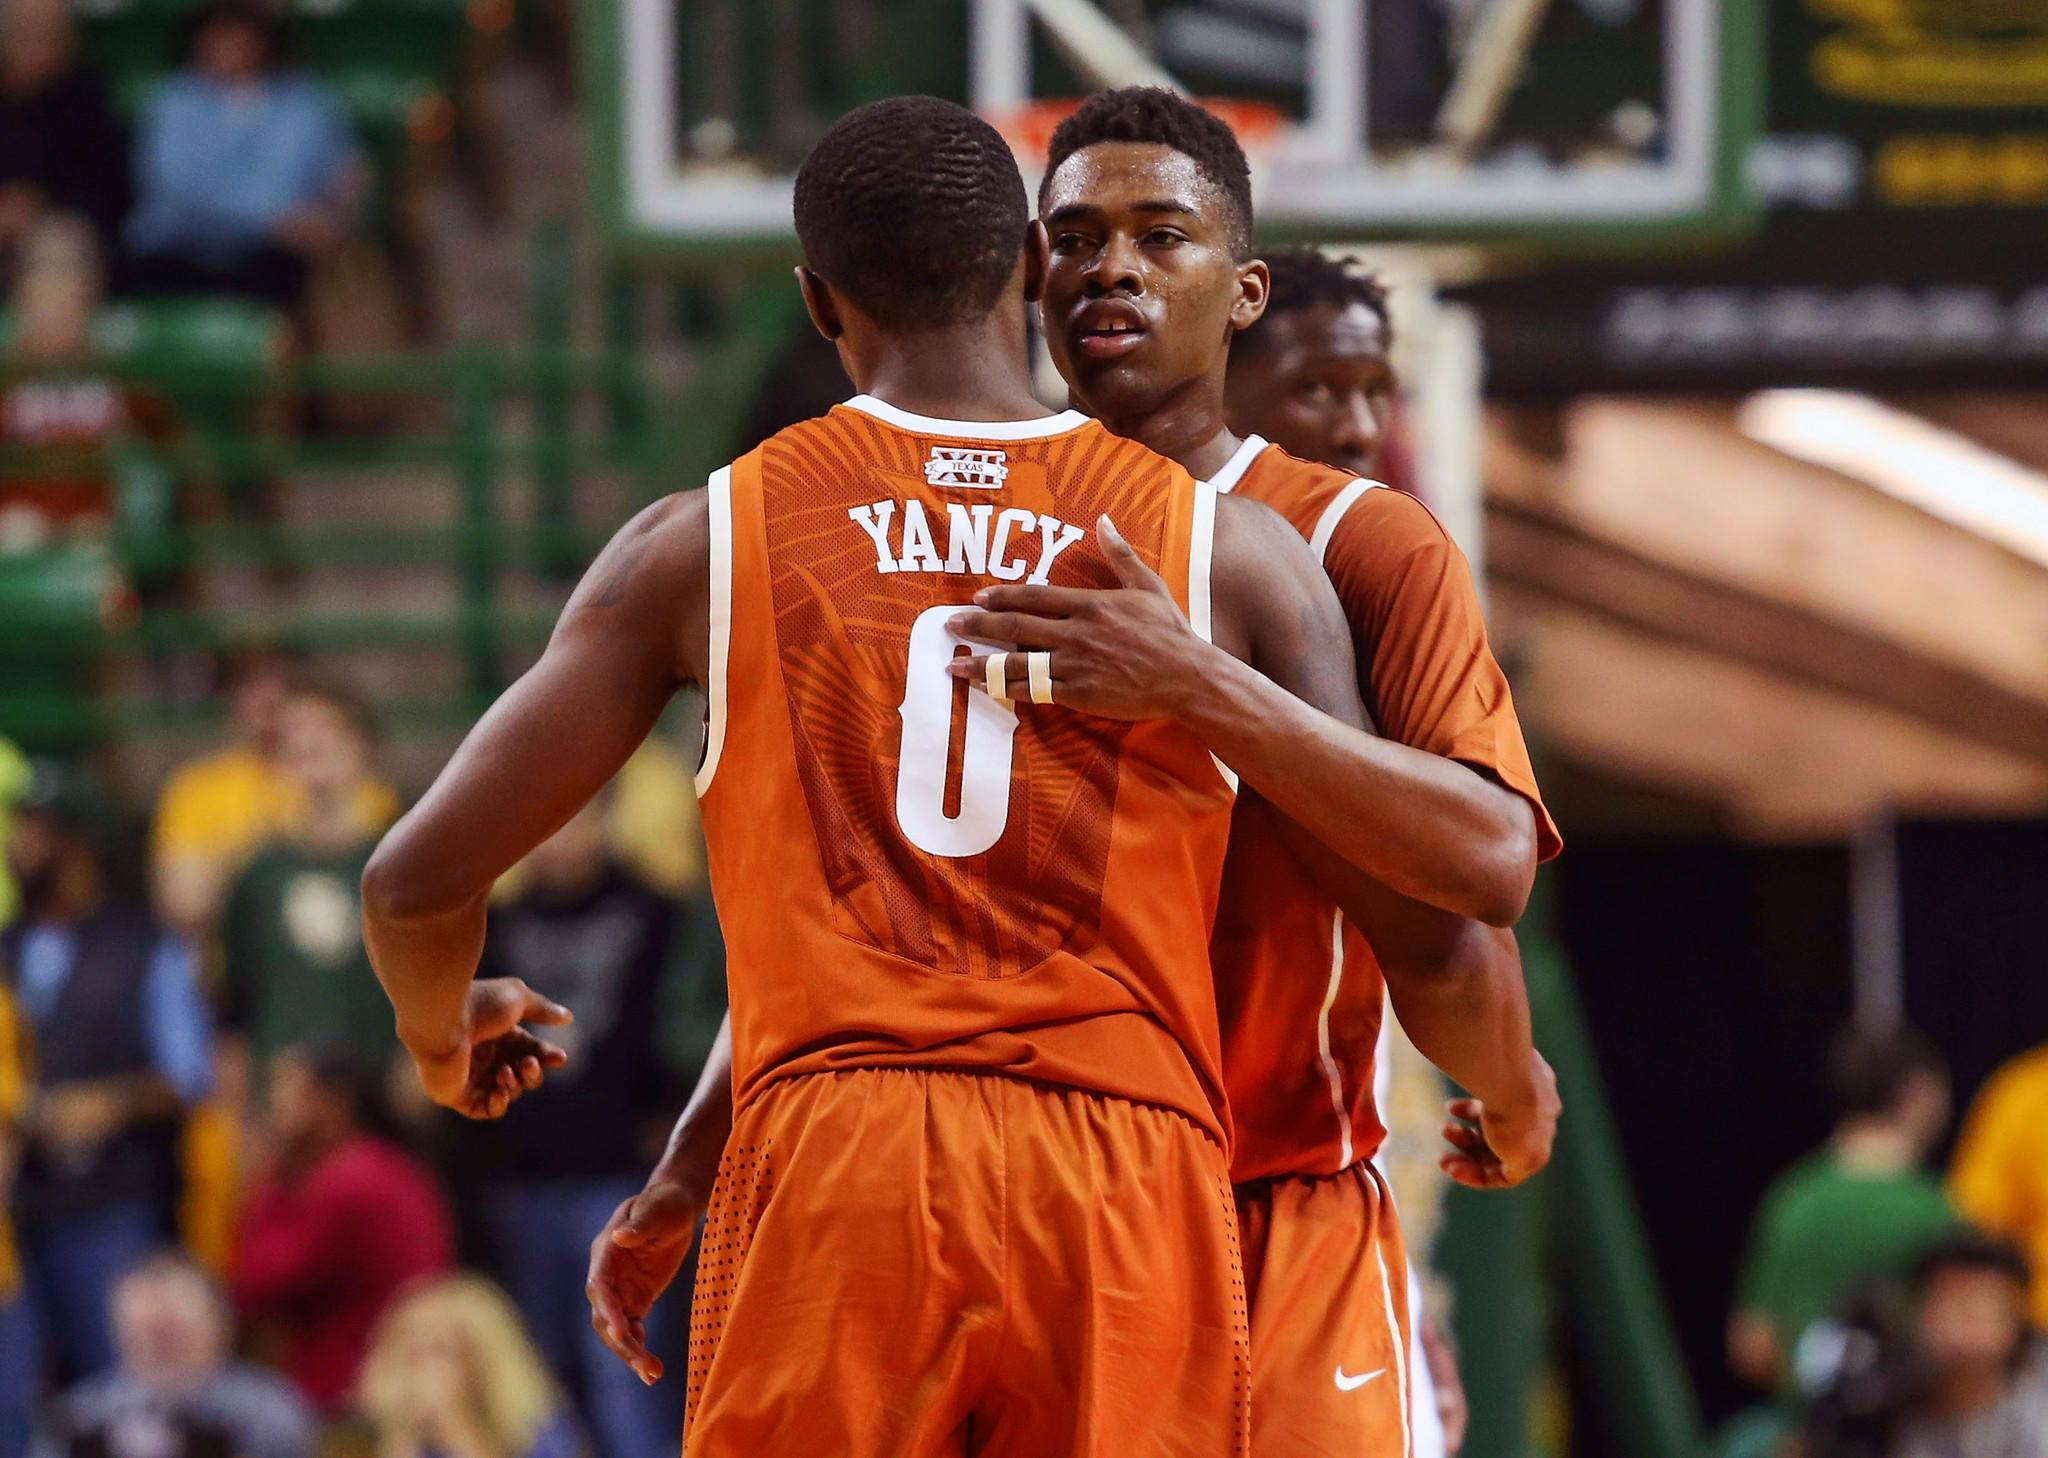 Longhorns guard Isaiah Taylor (1) hugs guard Kendal Yancy (0) during the second half against Baylor at The Ferrell Center.